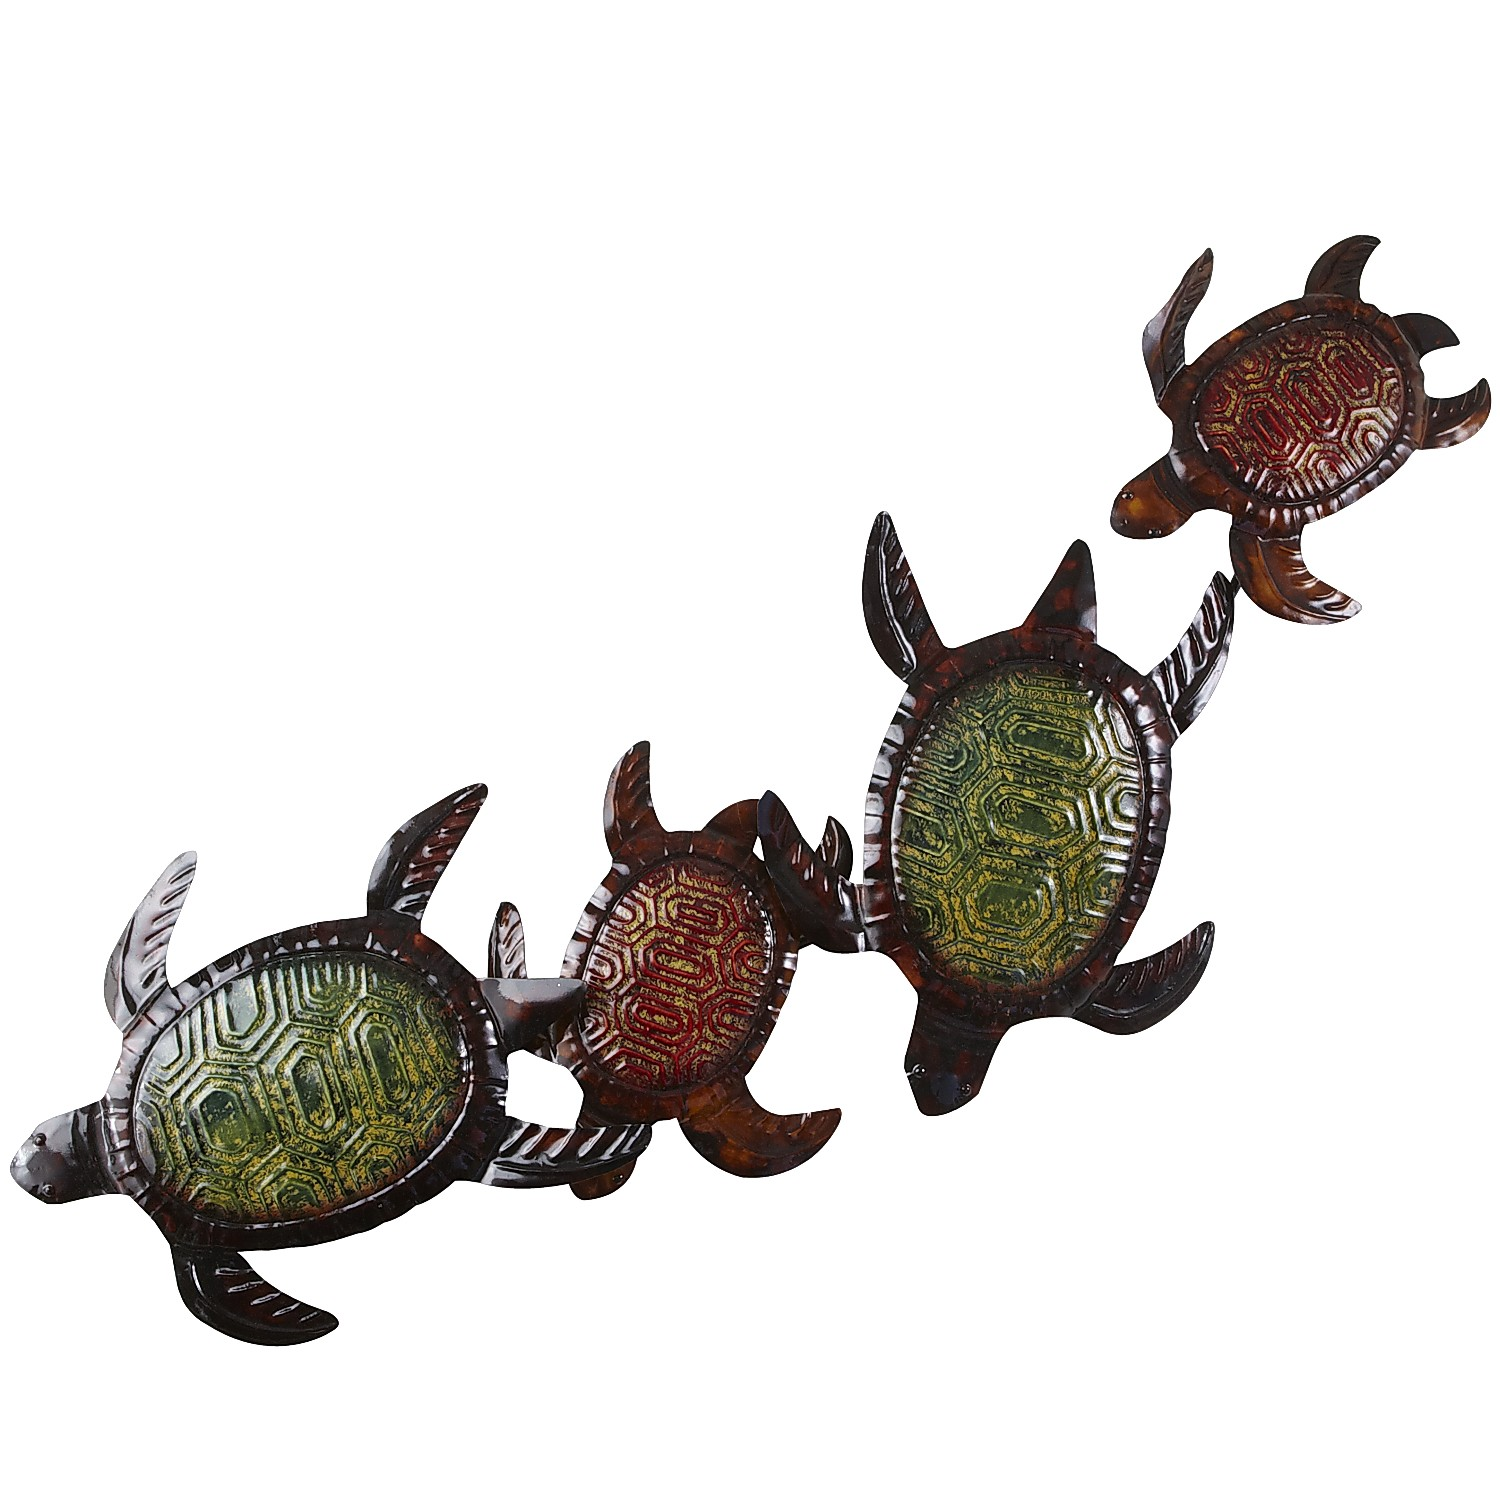 Climbing Turtles Wall Decor